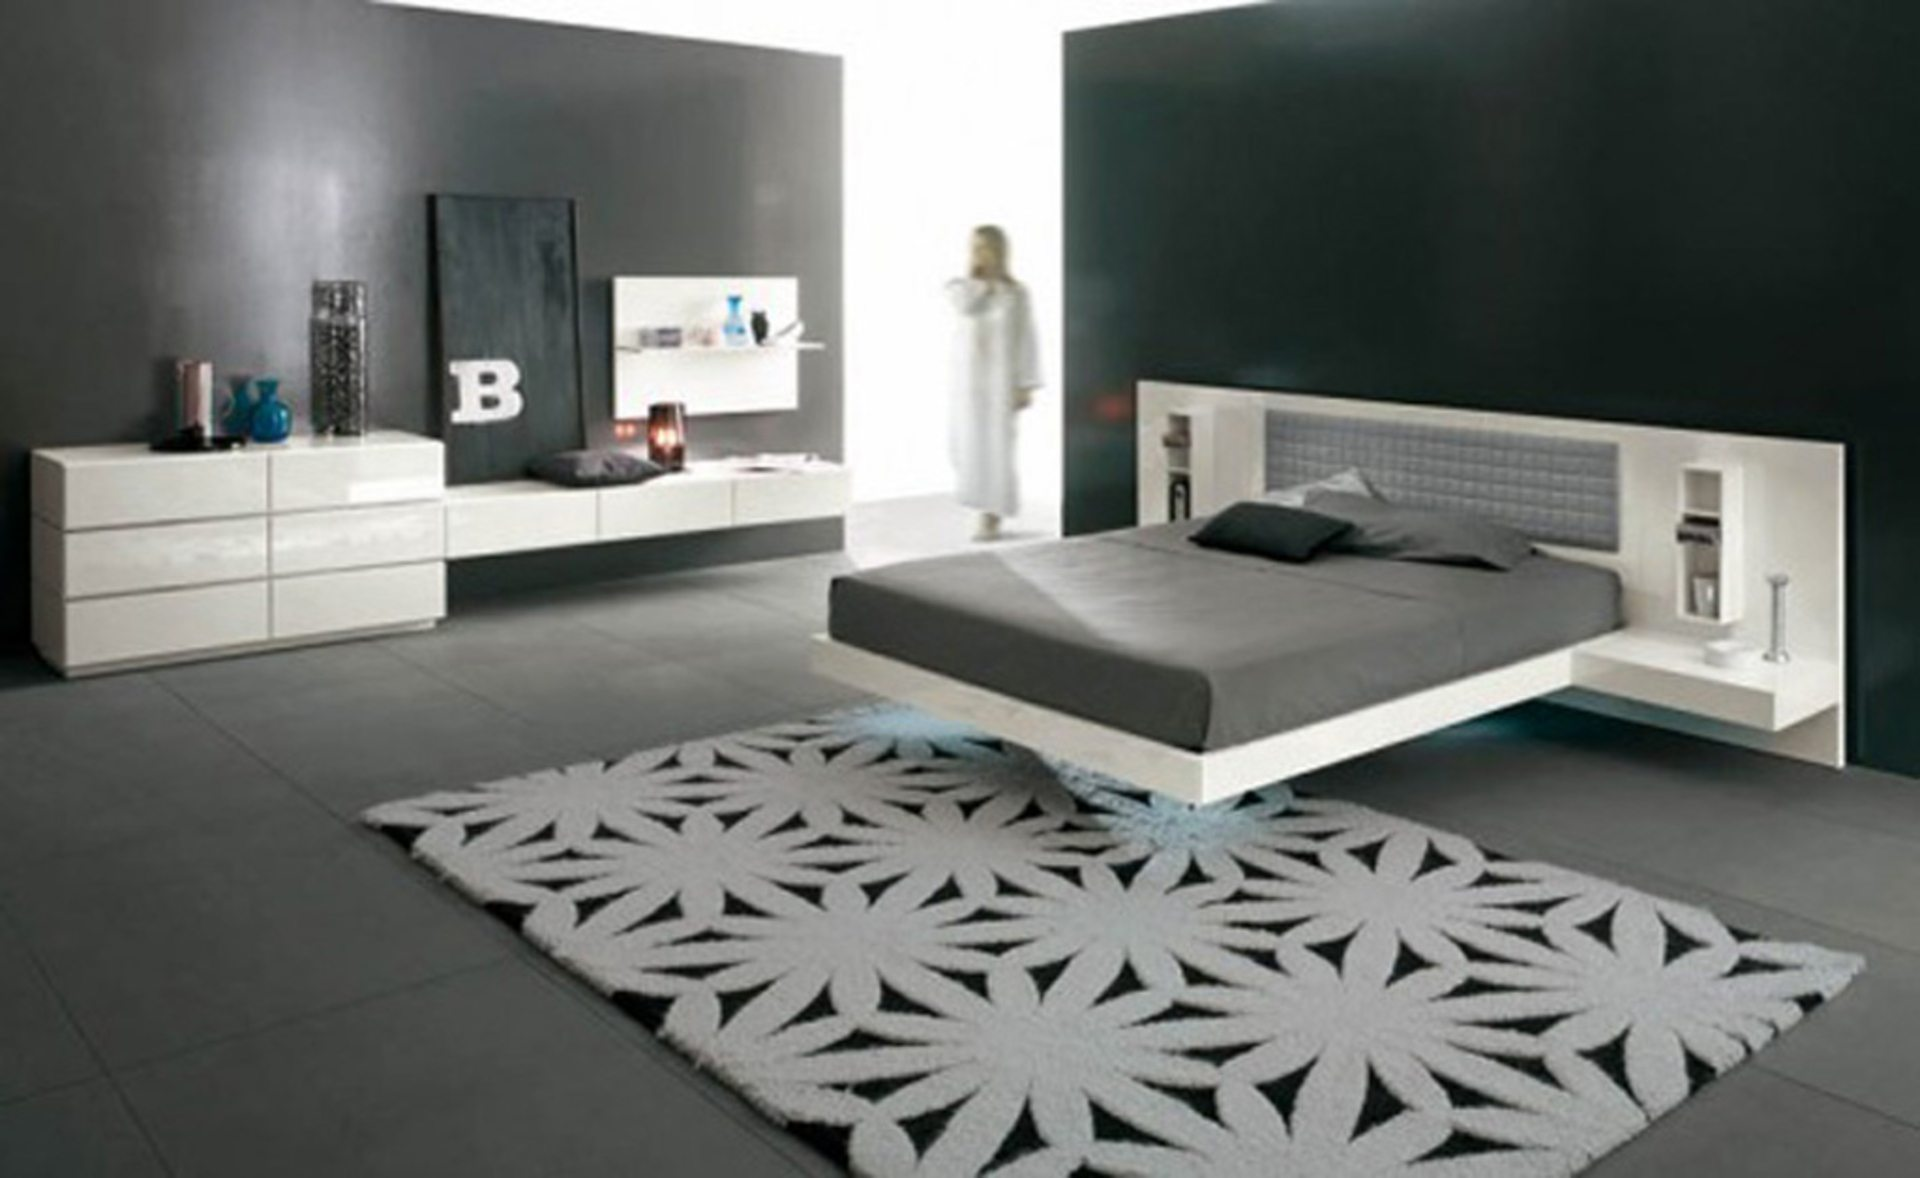 Bedroom Designs. Bedroom Designs